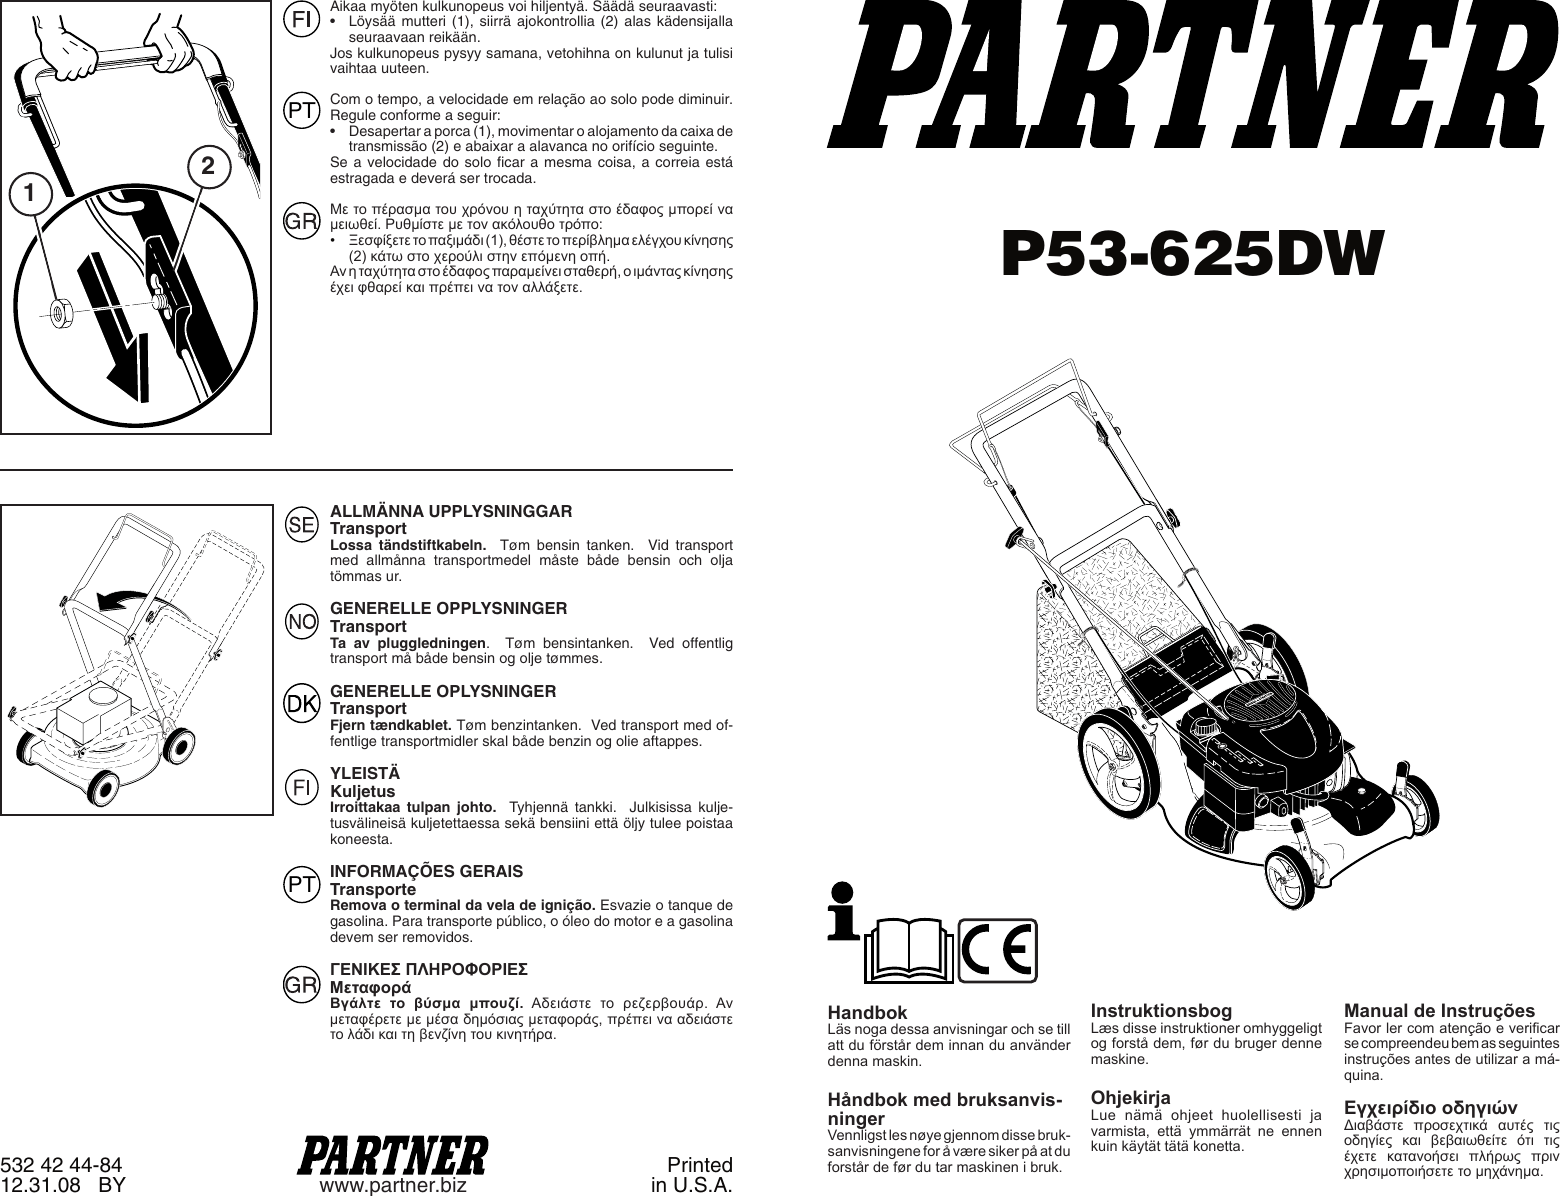 Partner Tech P53 625Dw Users Manual